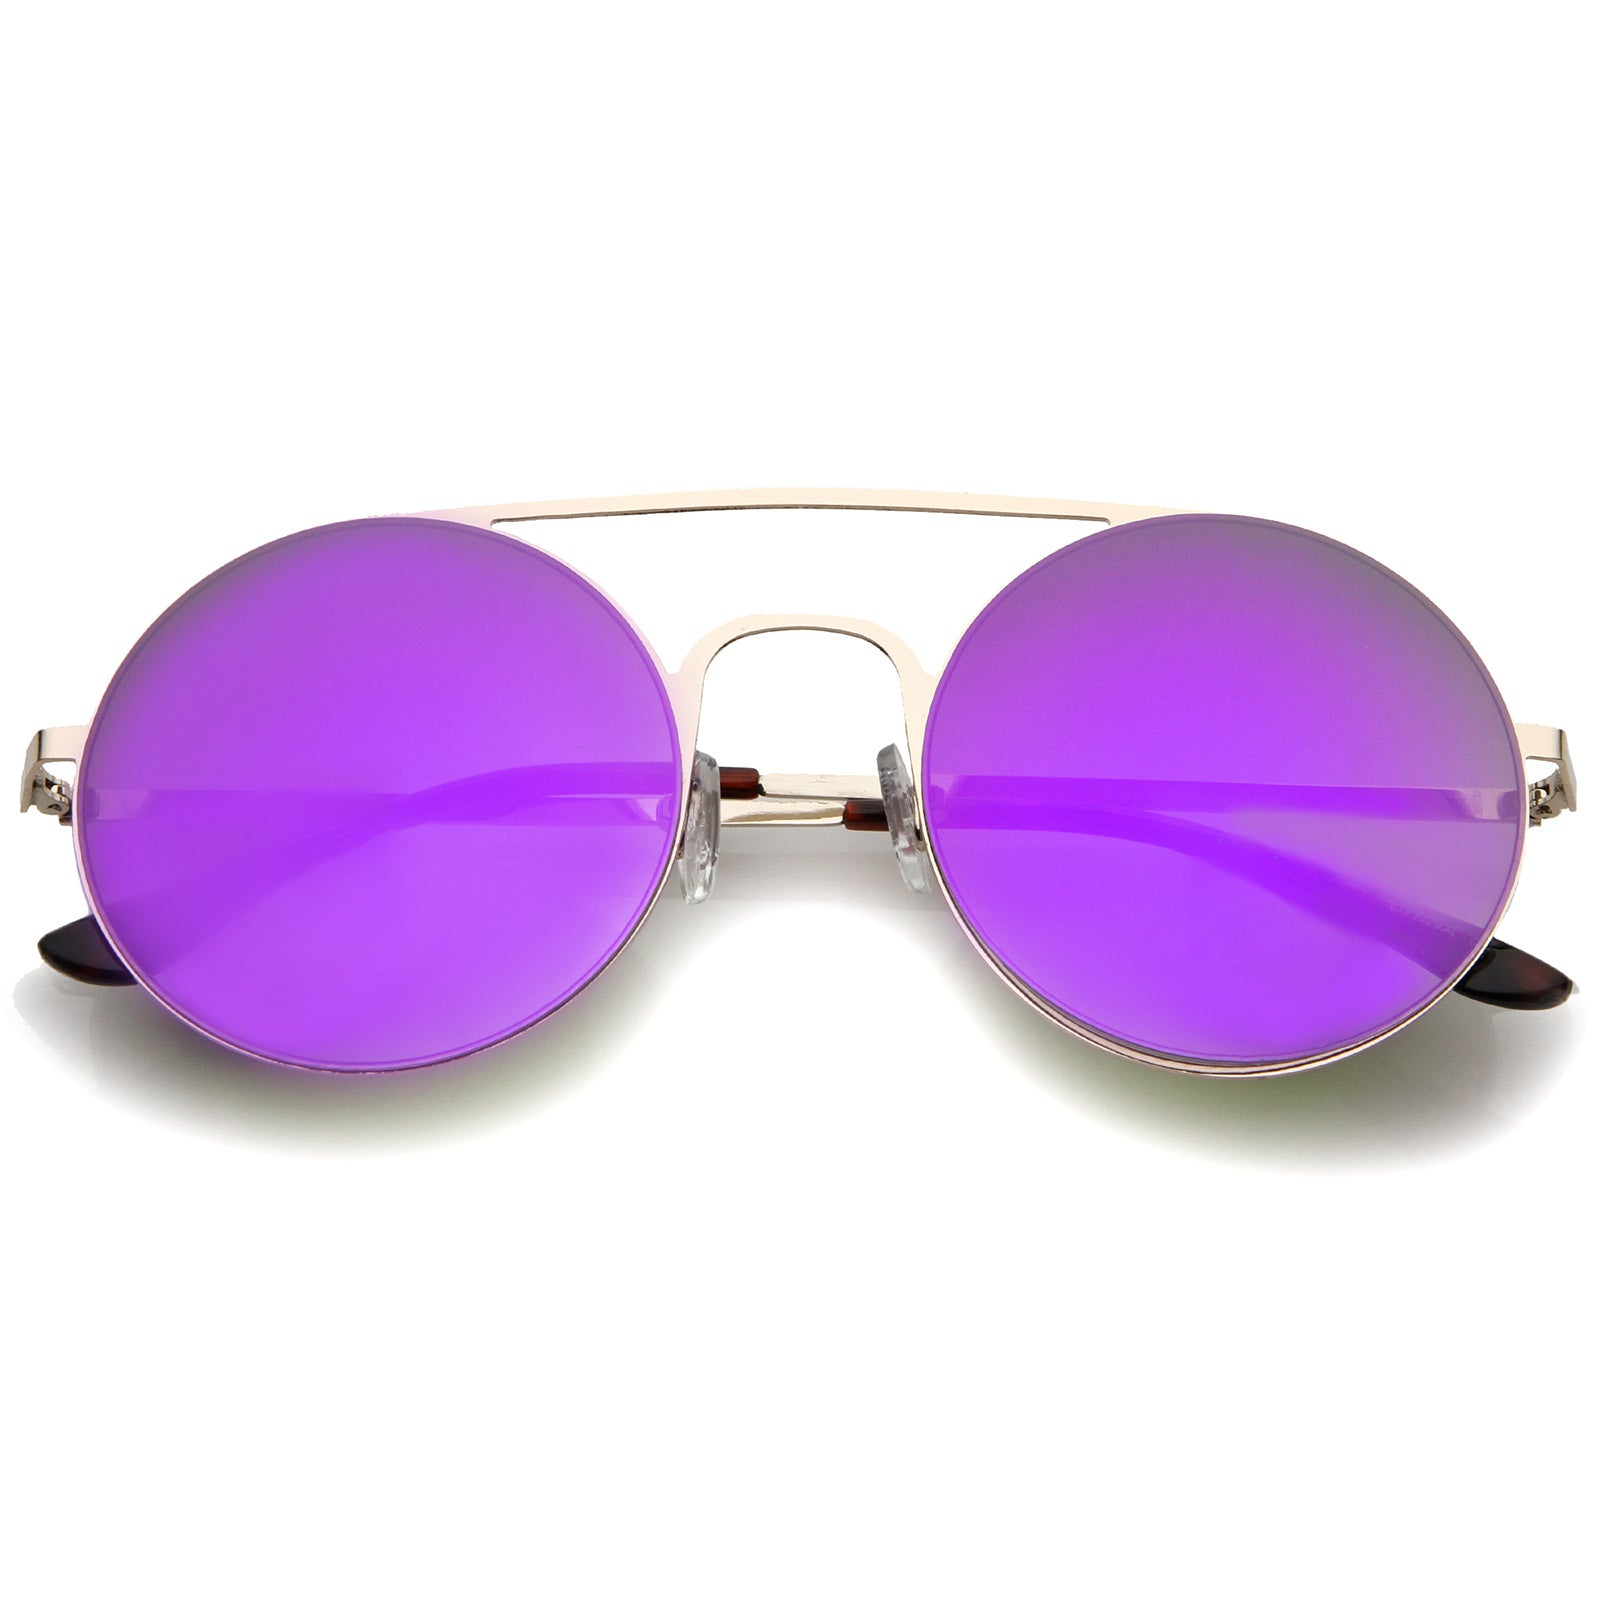 Modern Slim Double Nose Bridge Colored Mirror Flat Lens Round Sunglasses 53mm - sunglass.la - 6